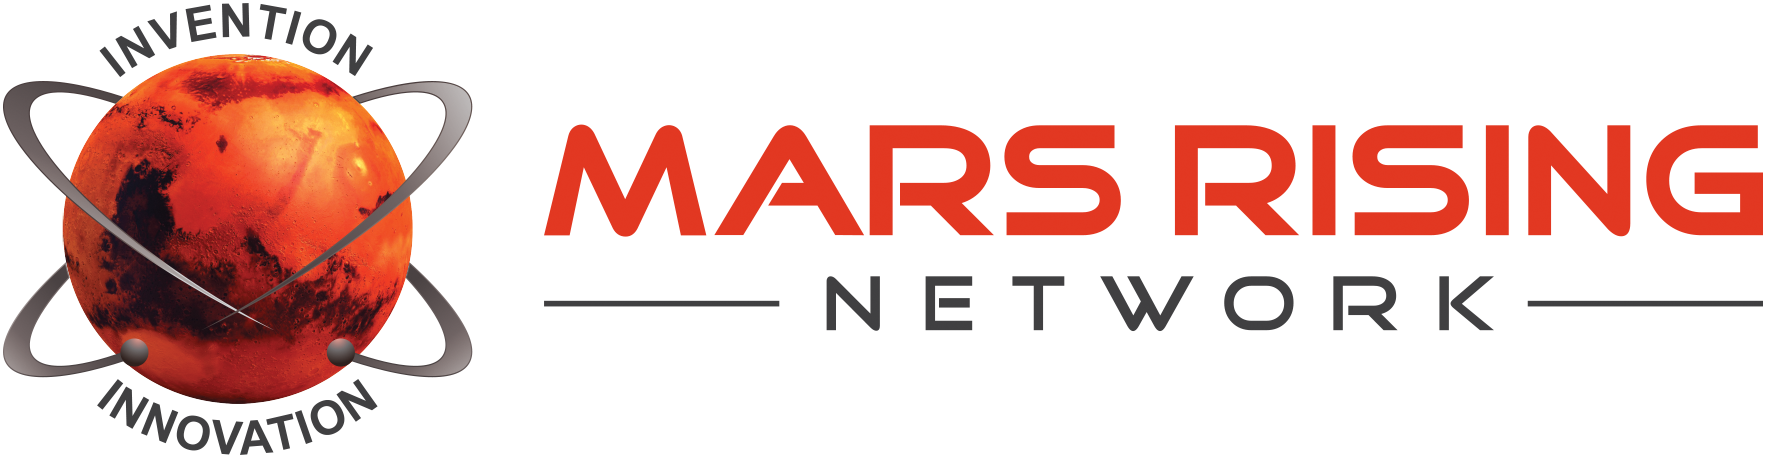 Create an exciting and professional logo for the Mars Rising Network!